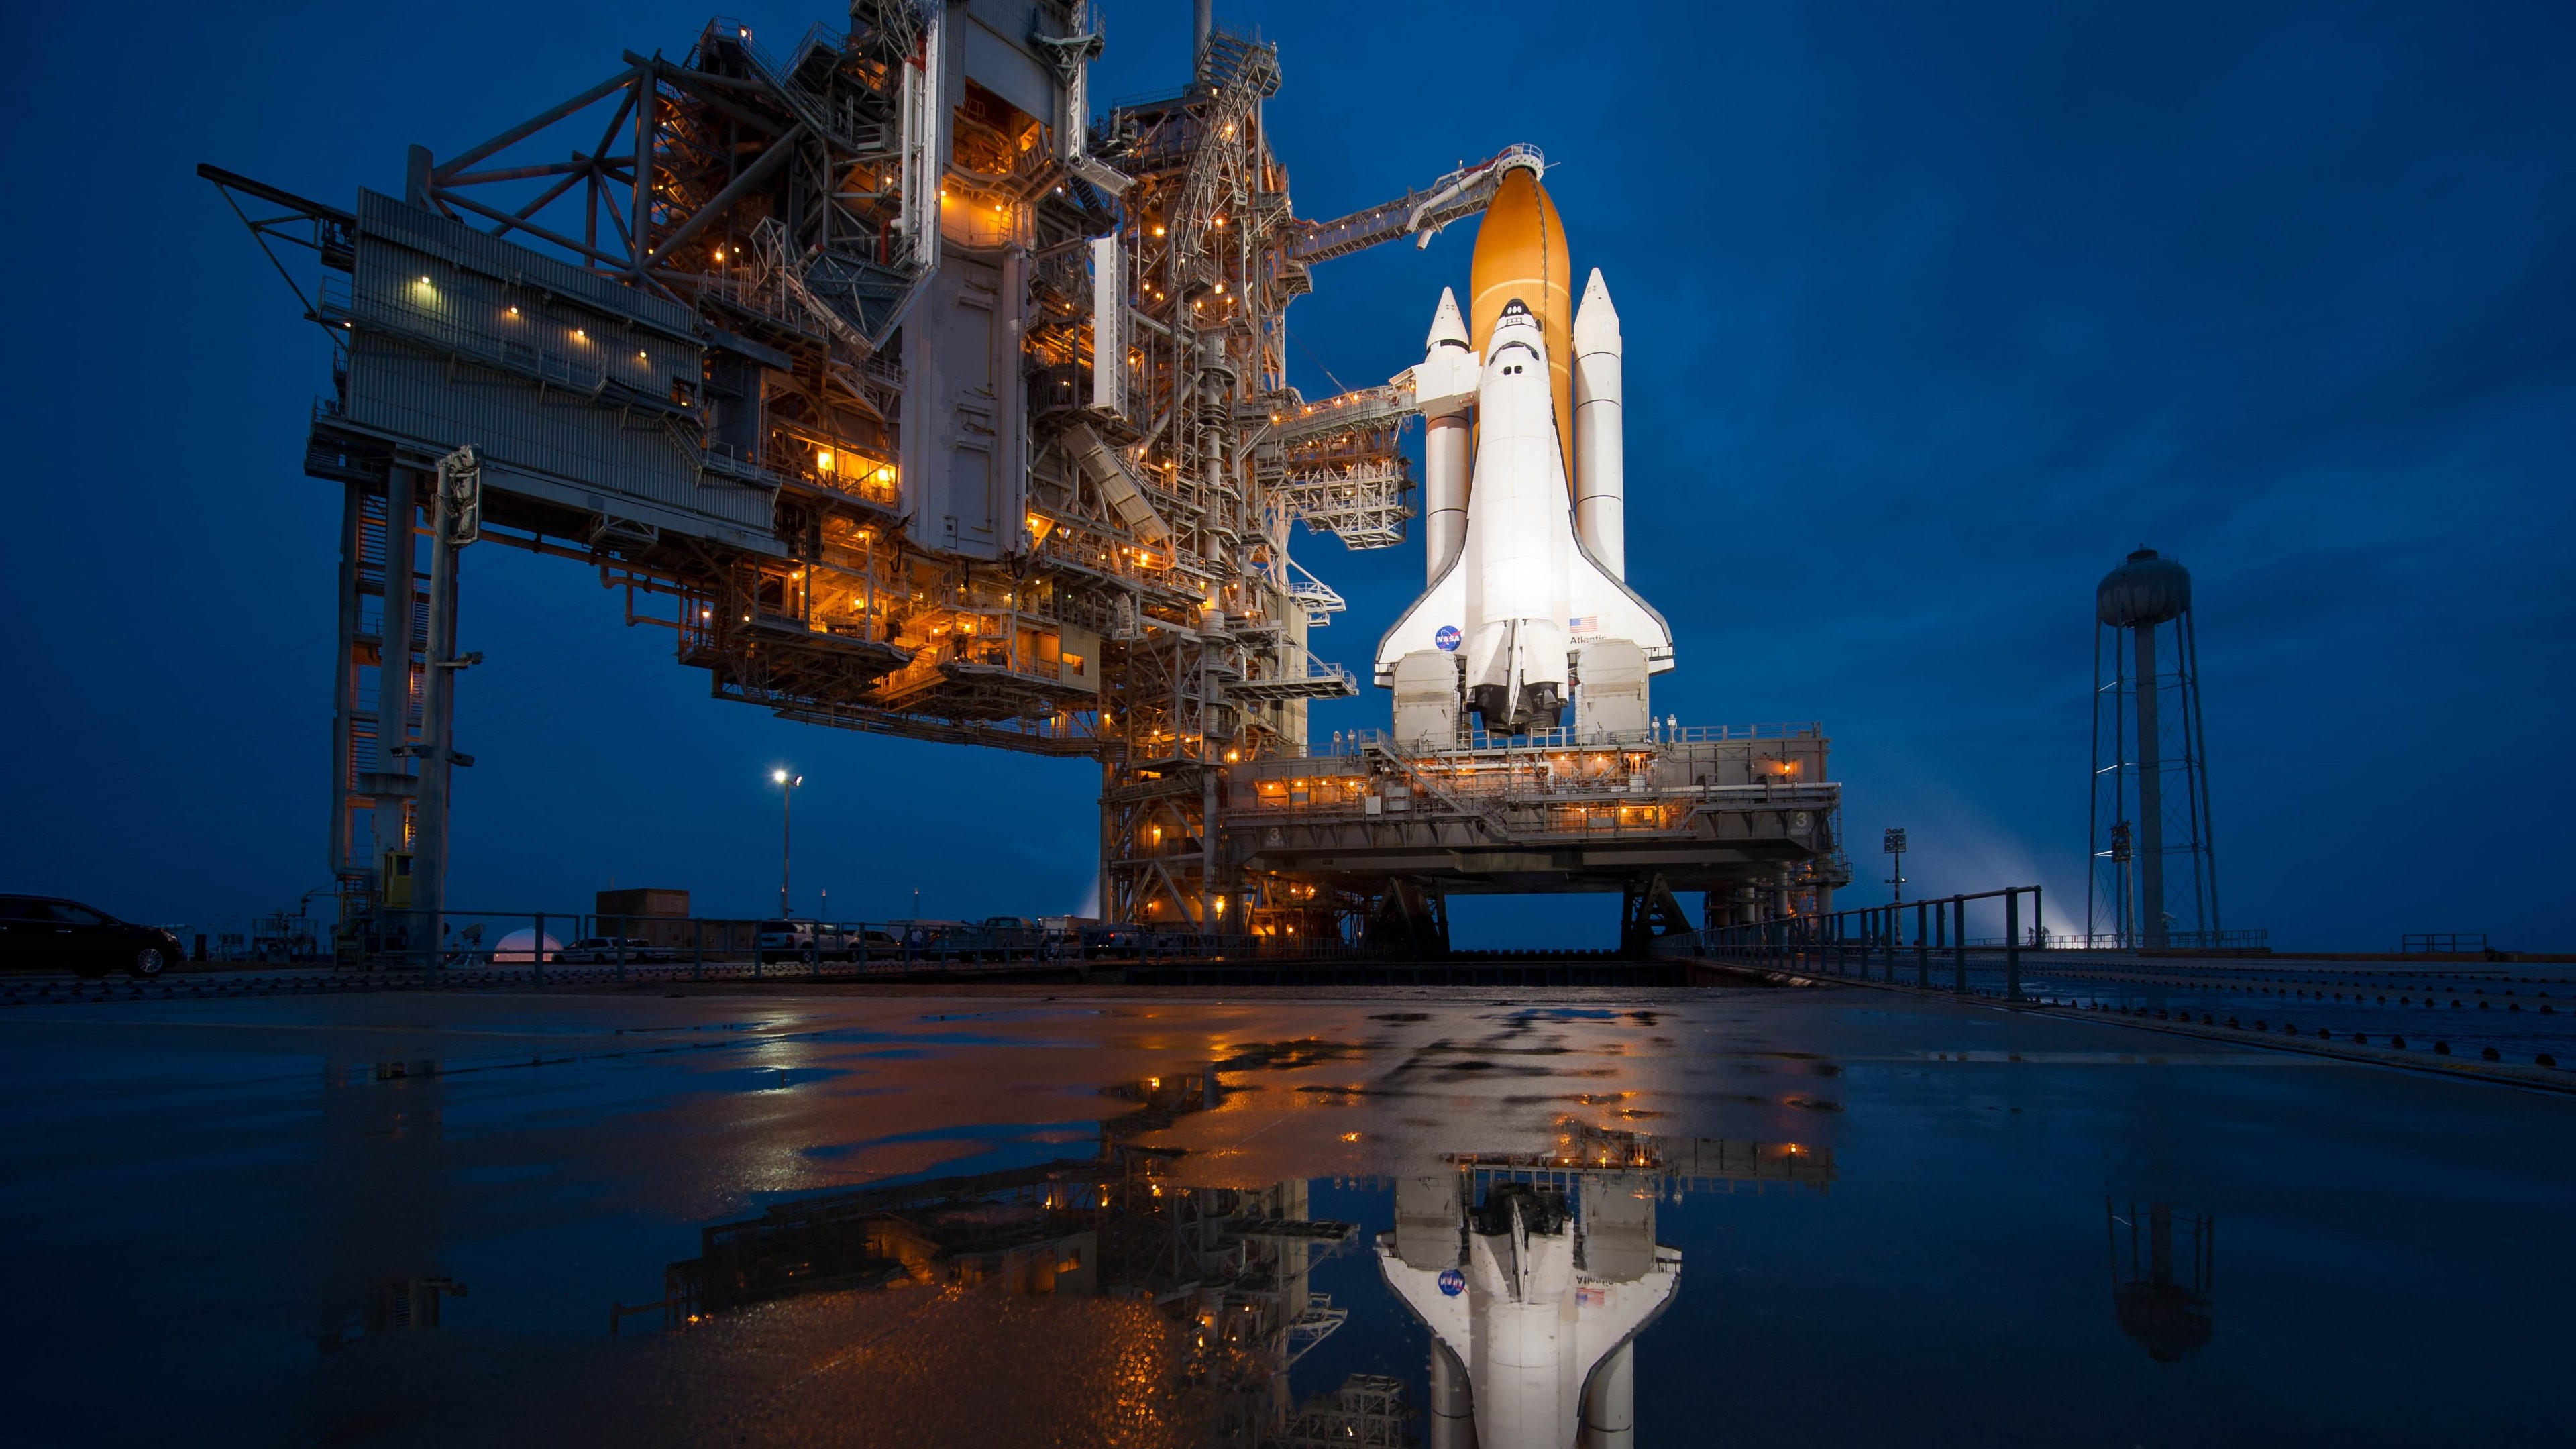 3840x2160 The 2nd HD wallpaper with the NASA Atlantis shuttle on the launch platform